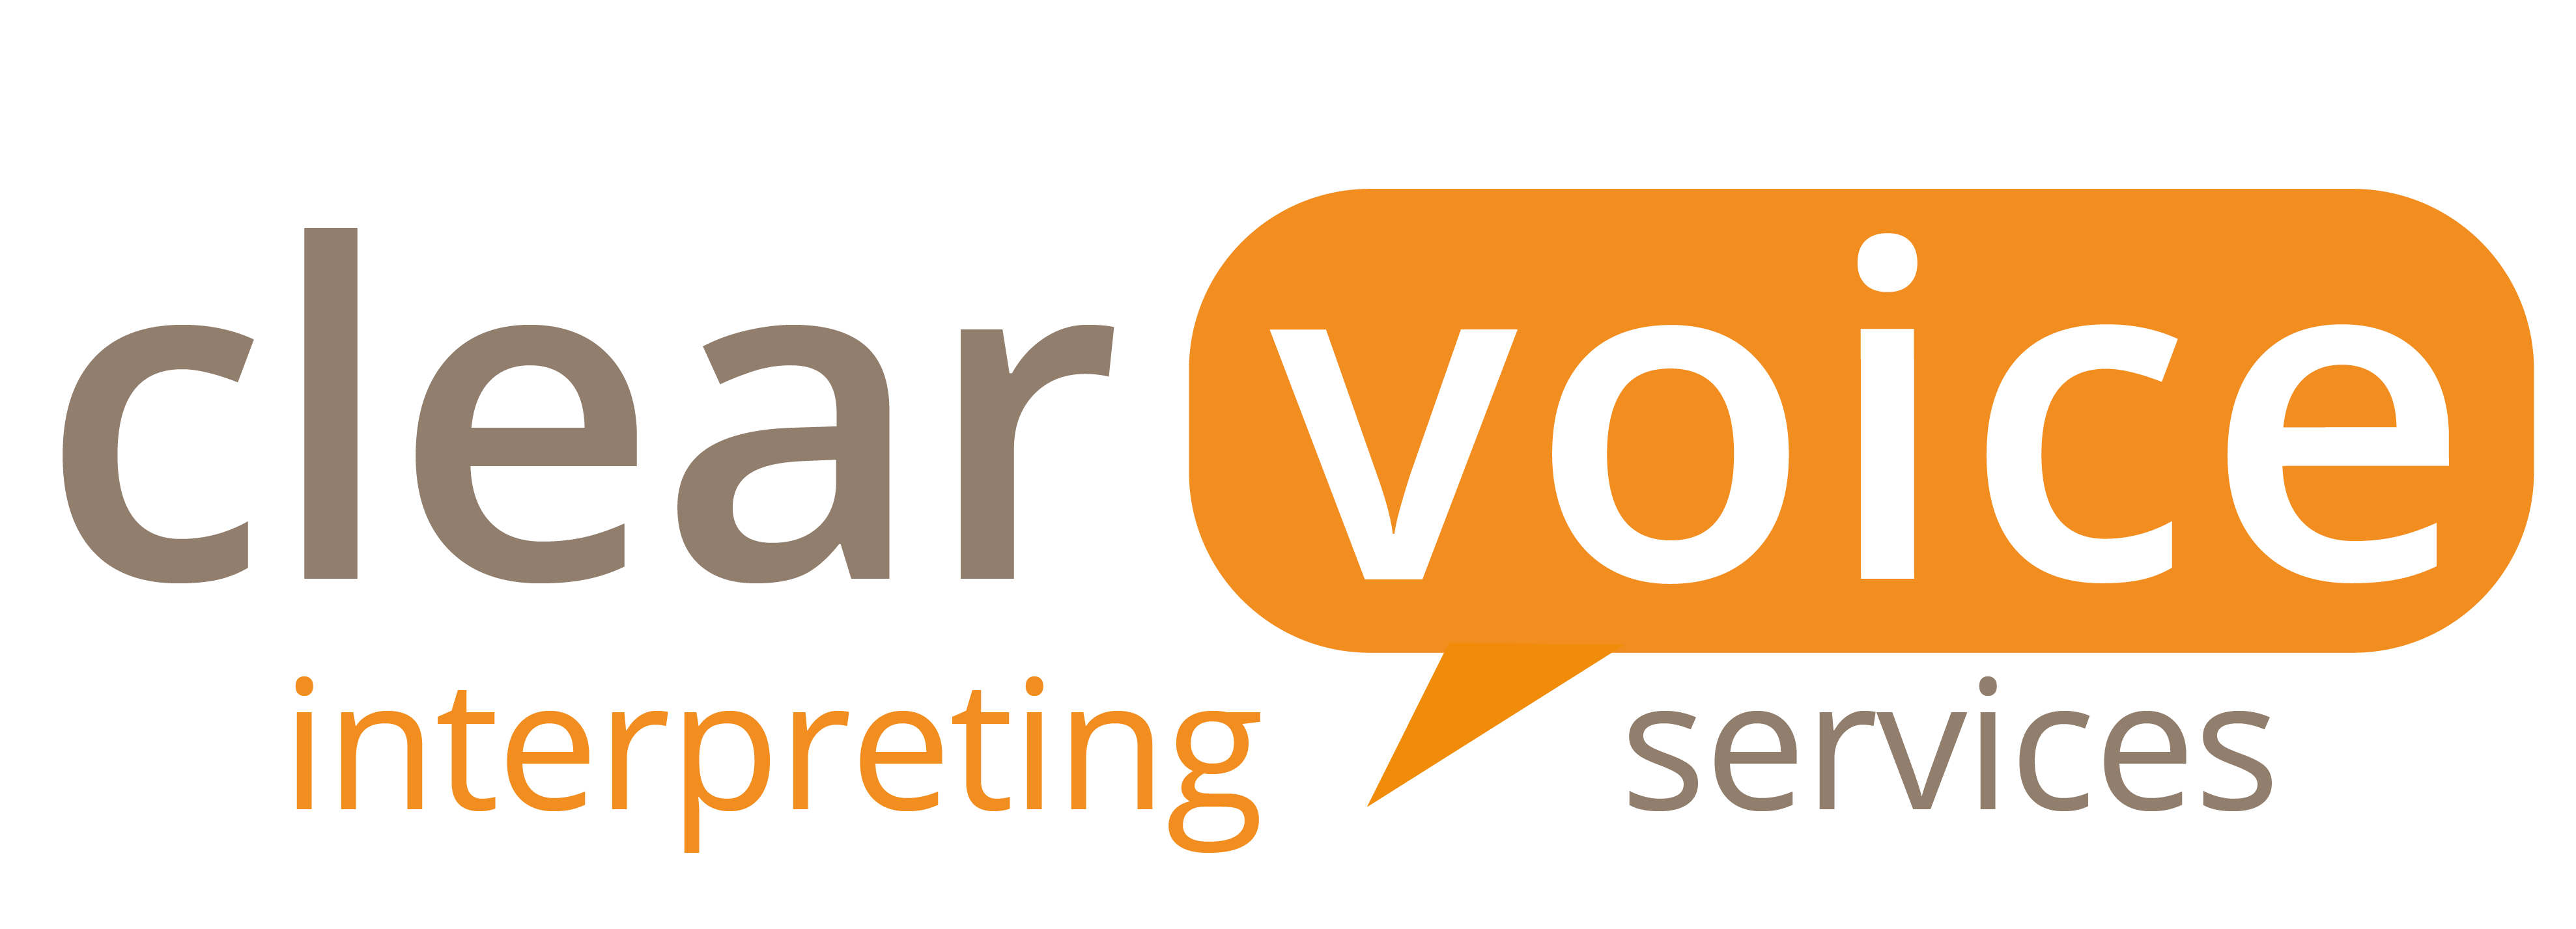 Clear Voice Interpreting Services